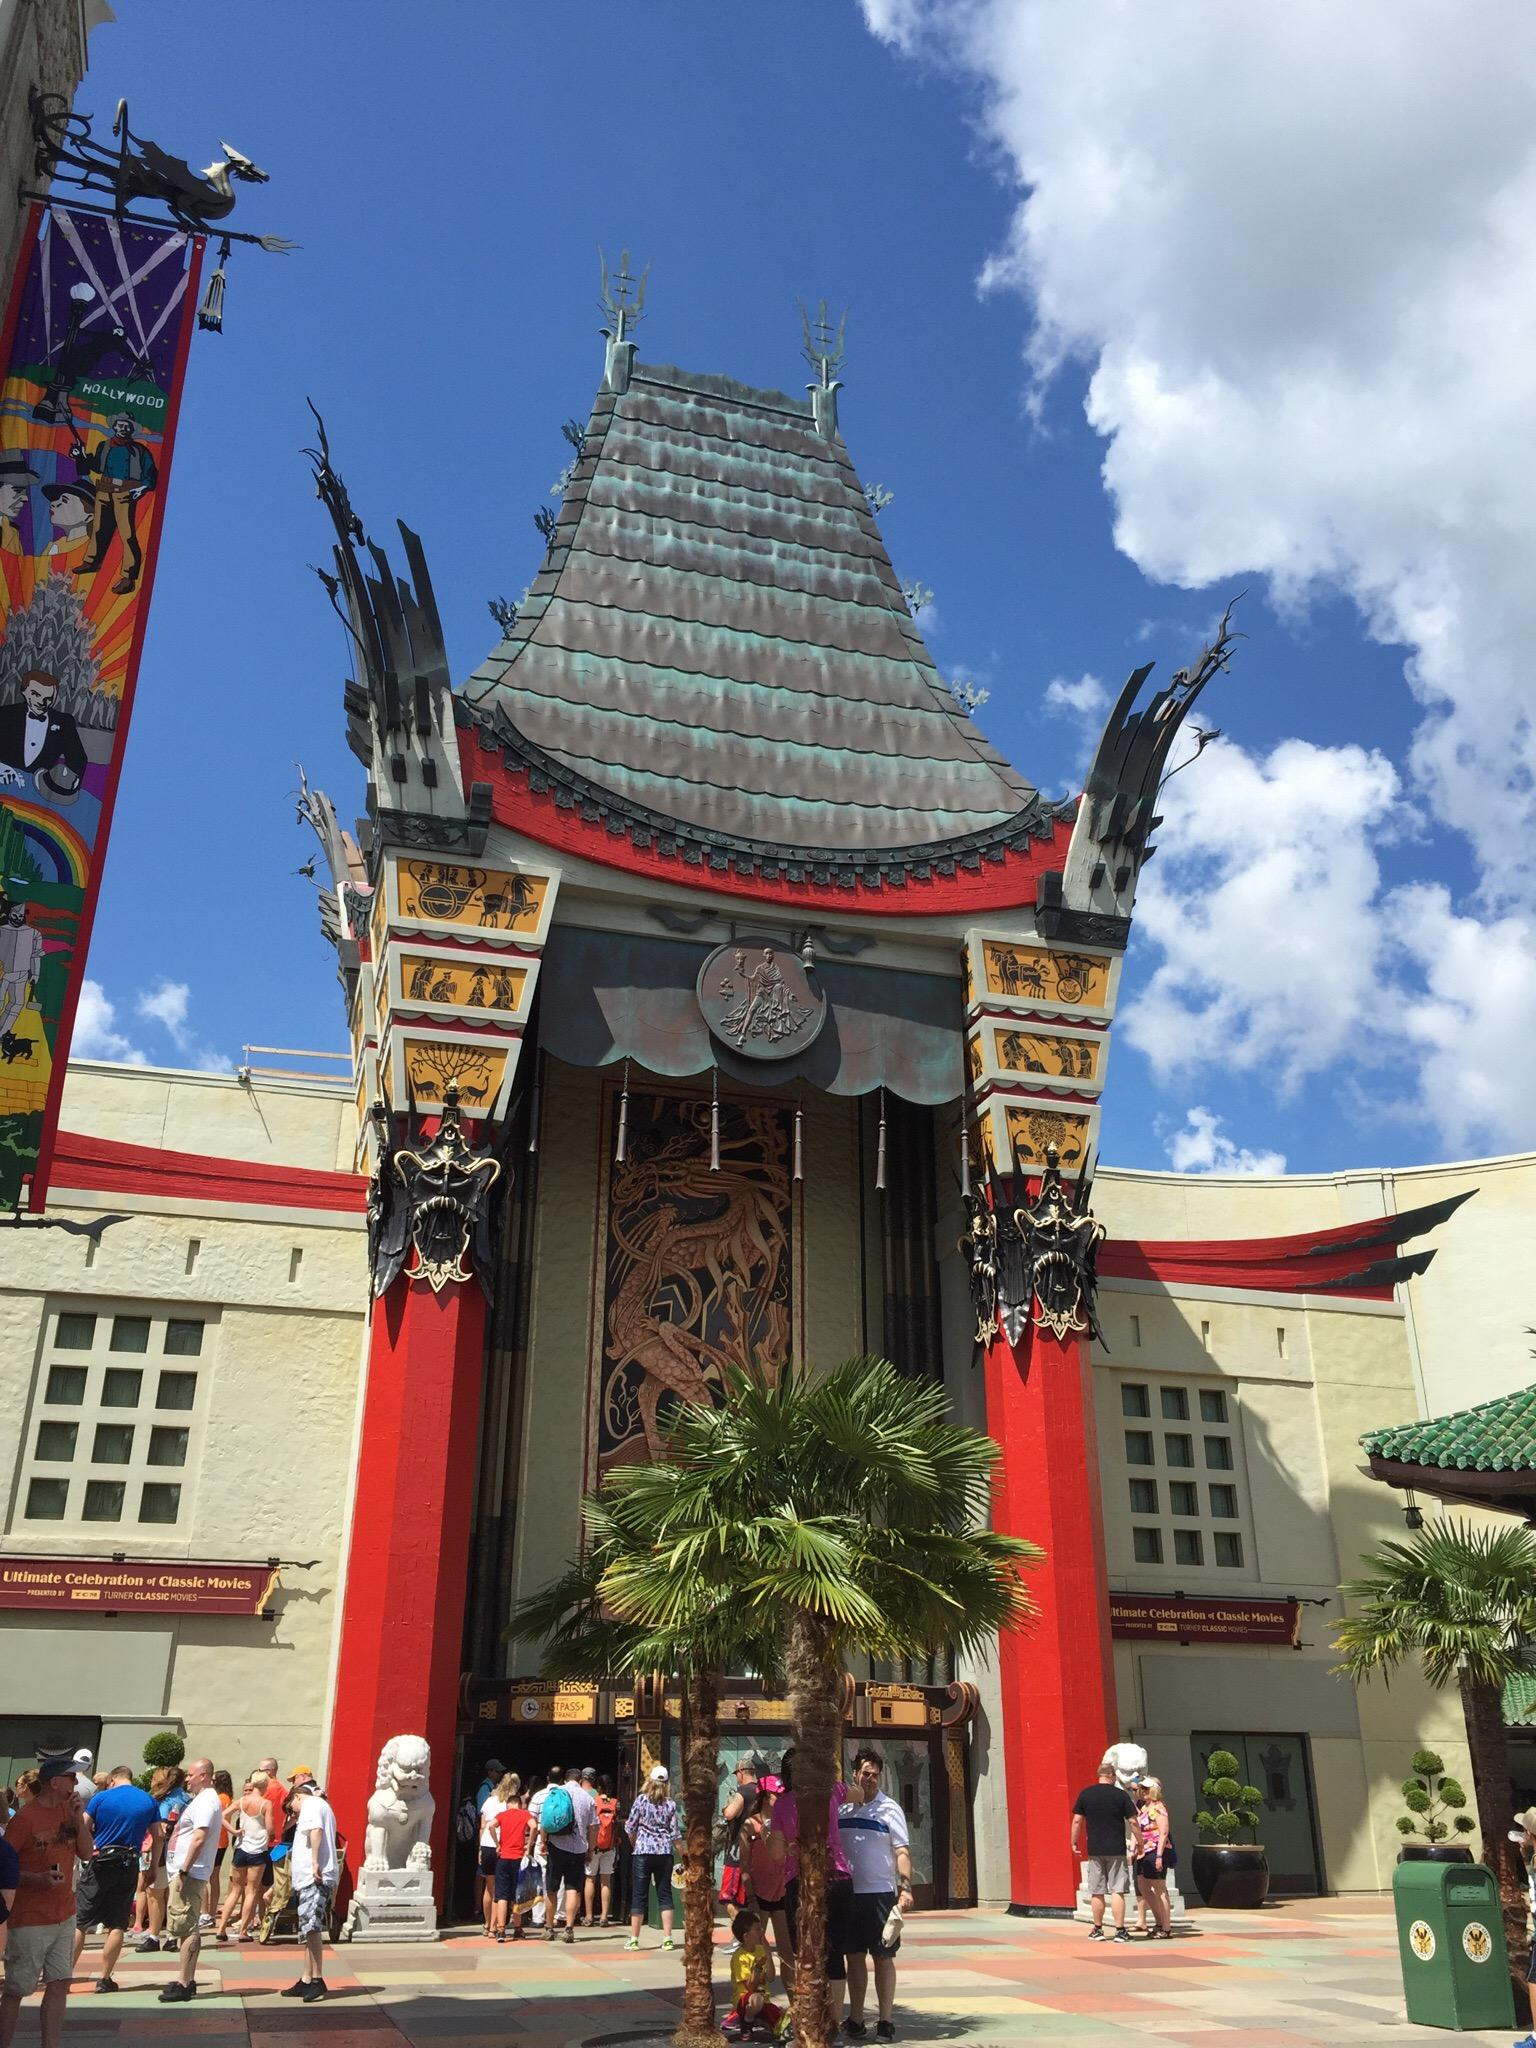 Entrance to the Great Movie Ride